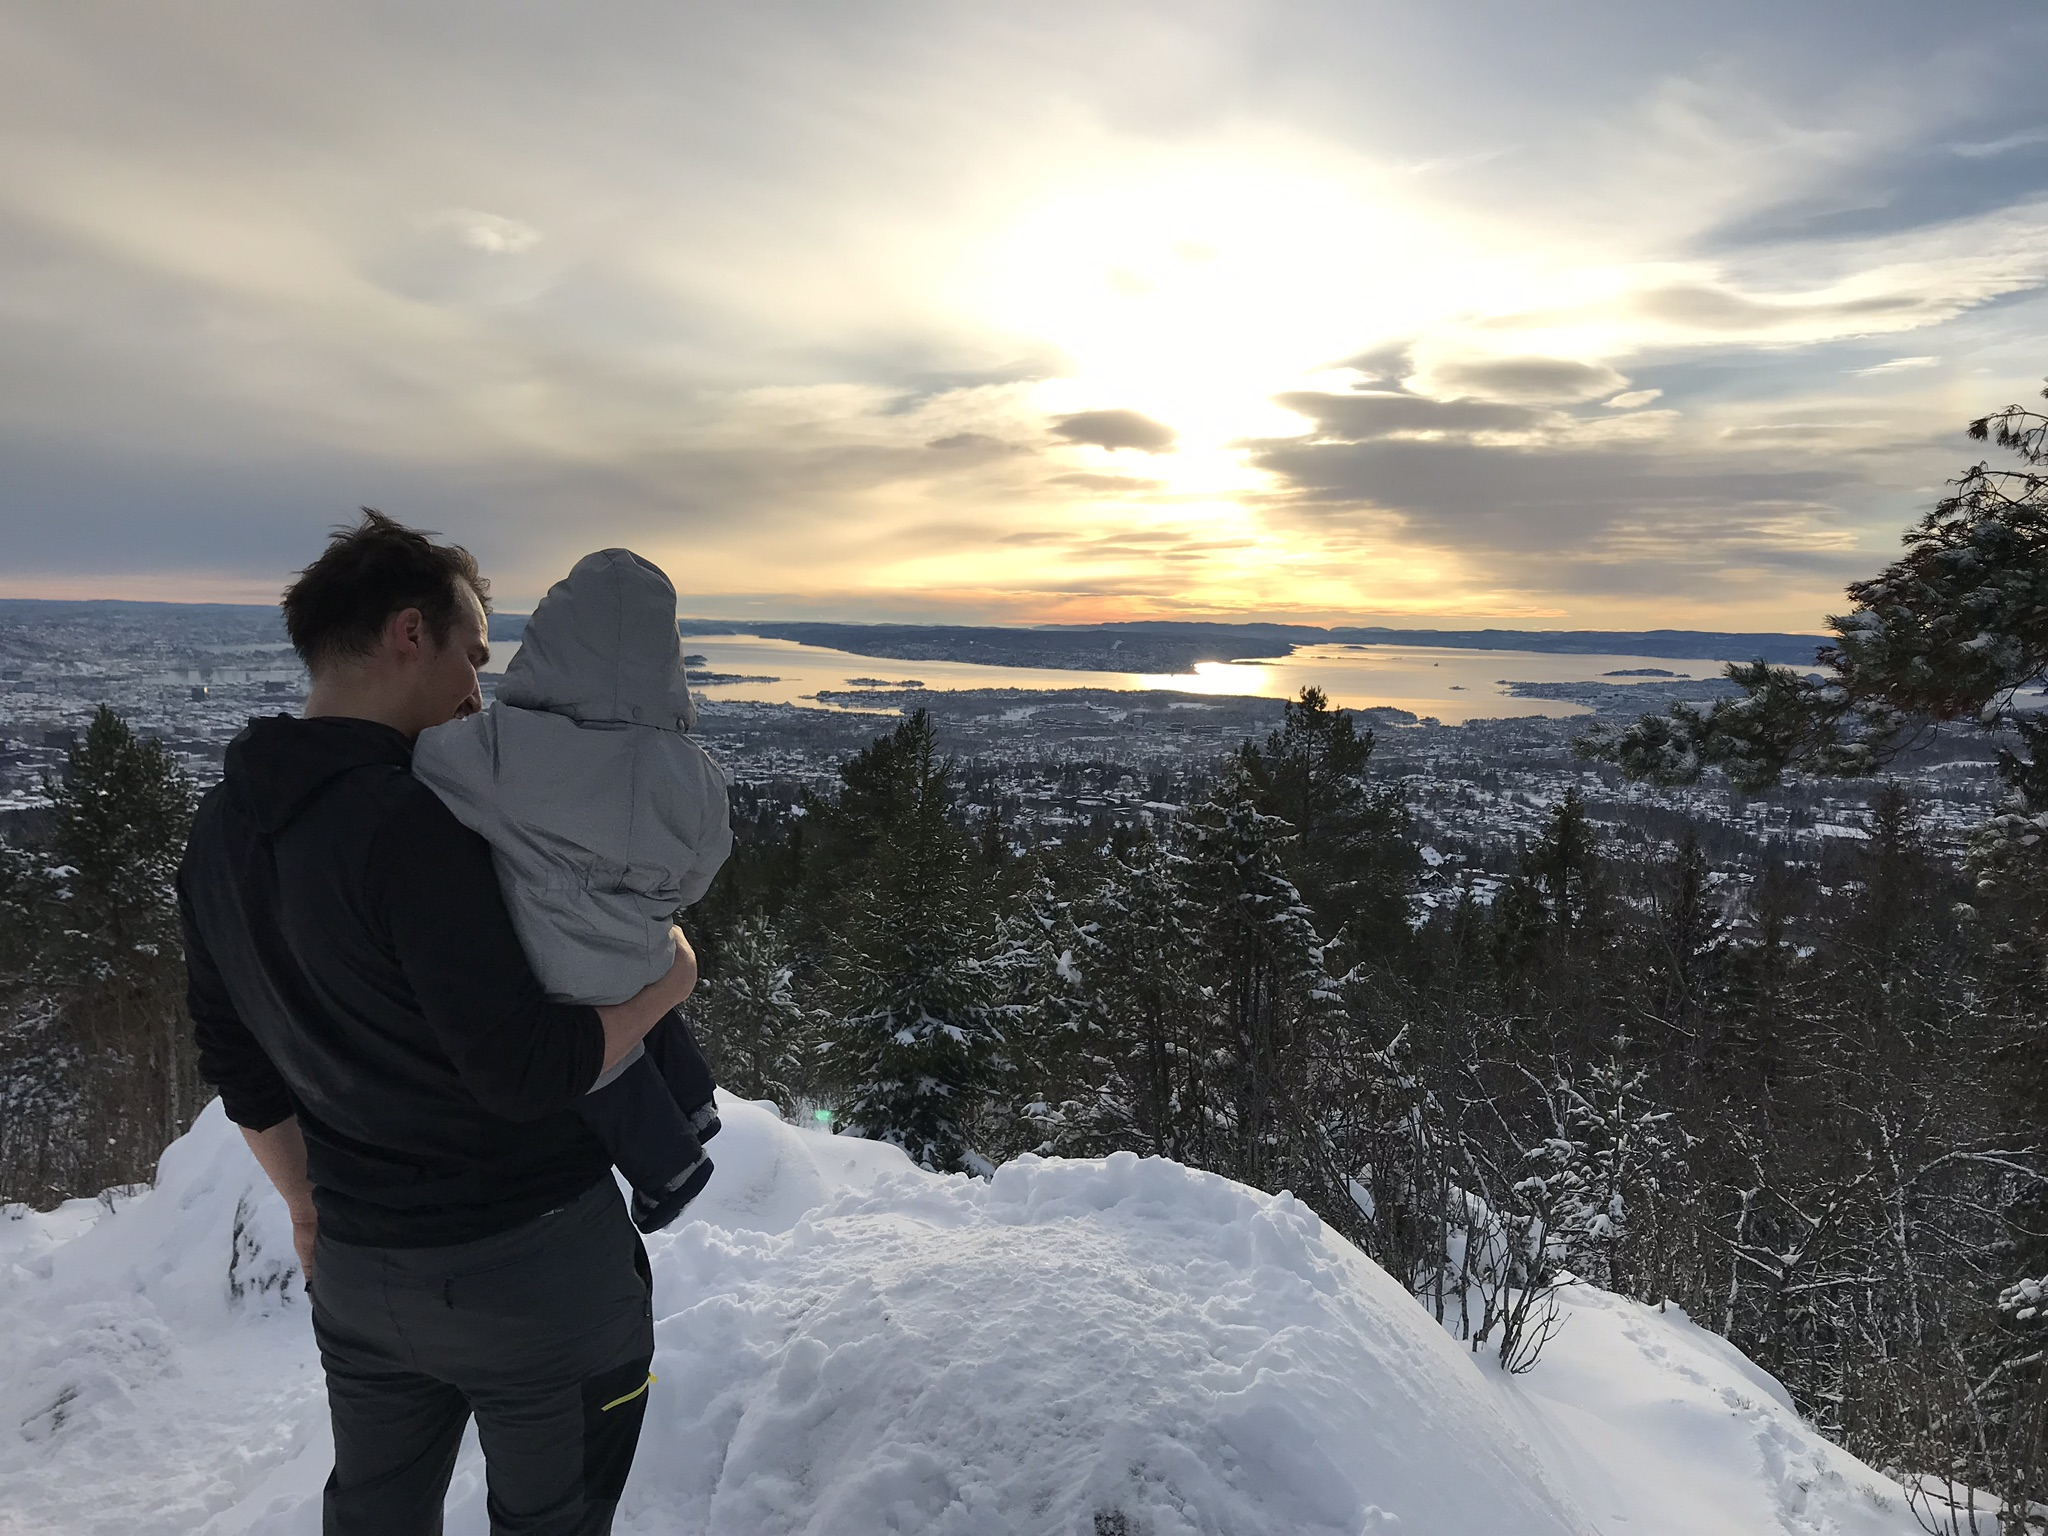 The first snowy trip to the top of Vittakollen